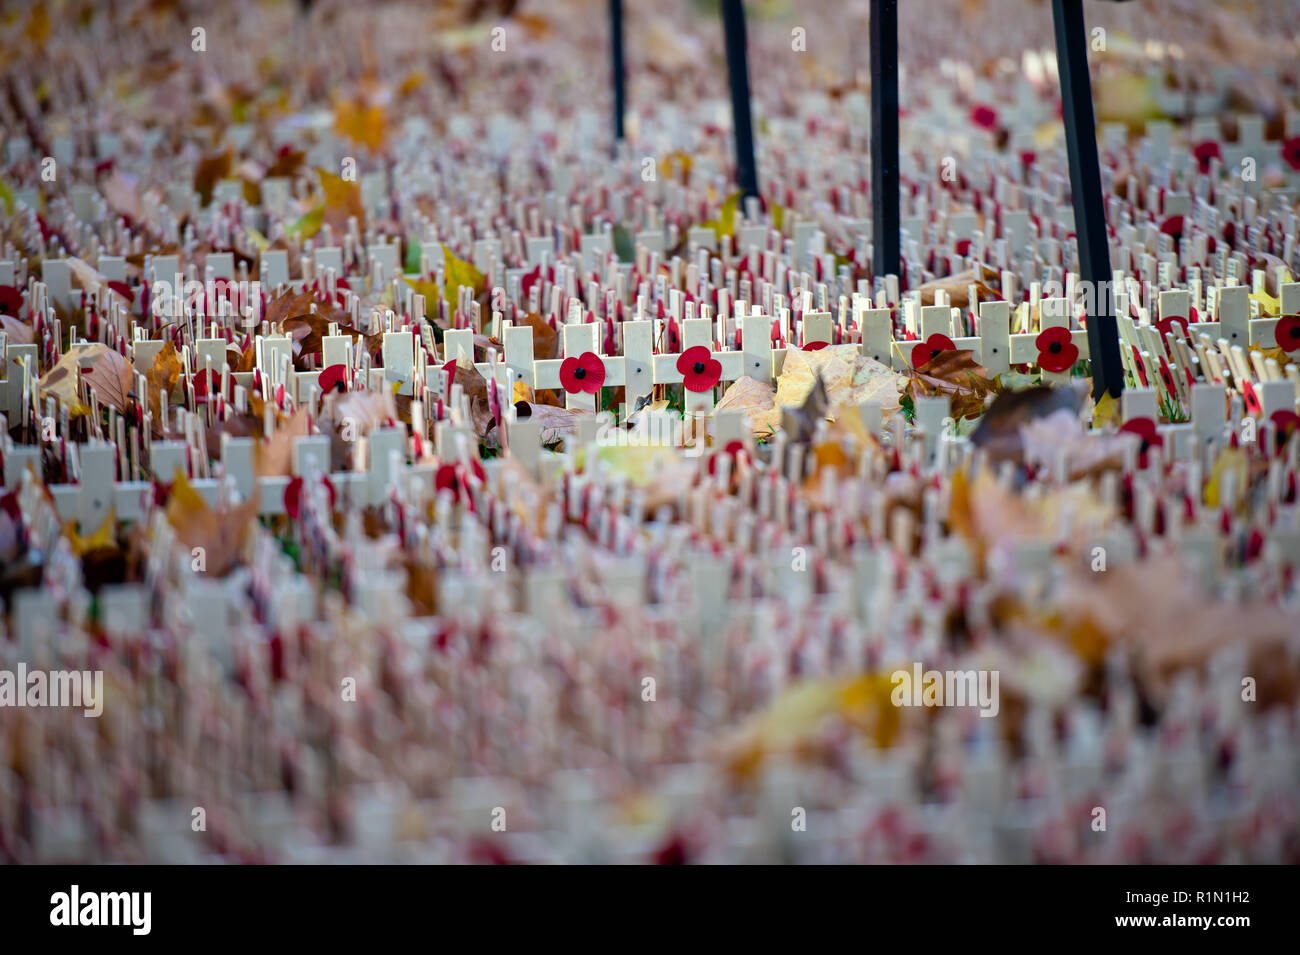 Poppies & wreaths left at memorials to mark Armistice Day & Remembrance of the fallen soldiers in the World Wars - Stock Image